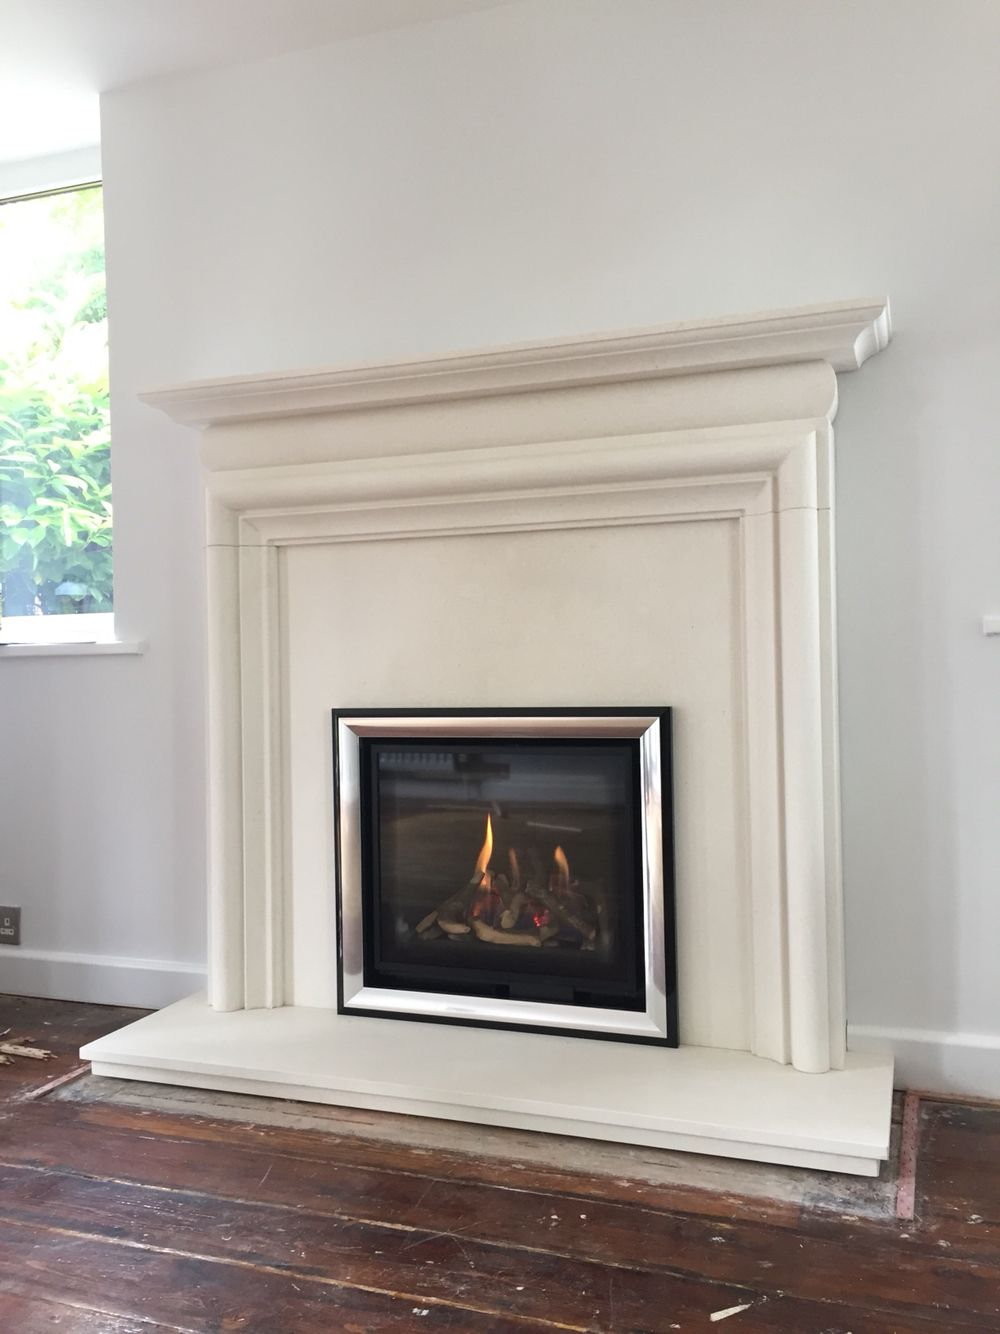 Asquith fireplace in agean limestone with matching back